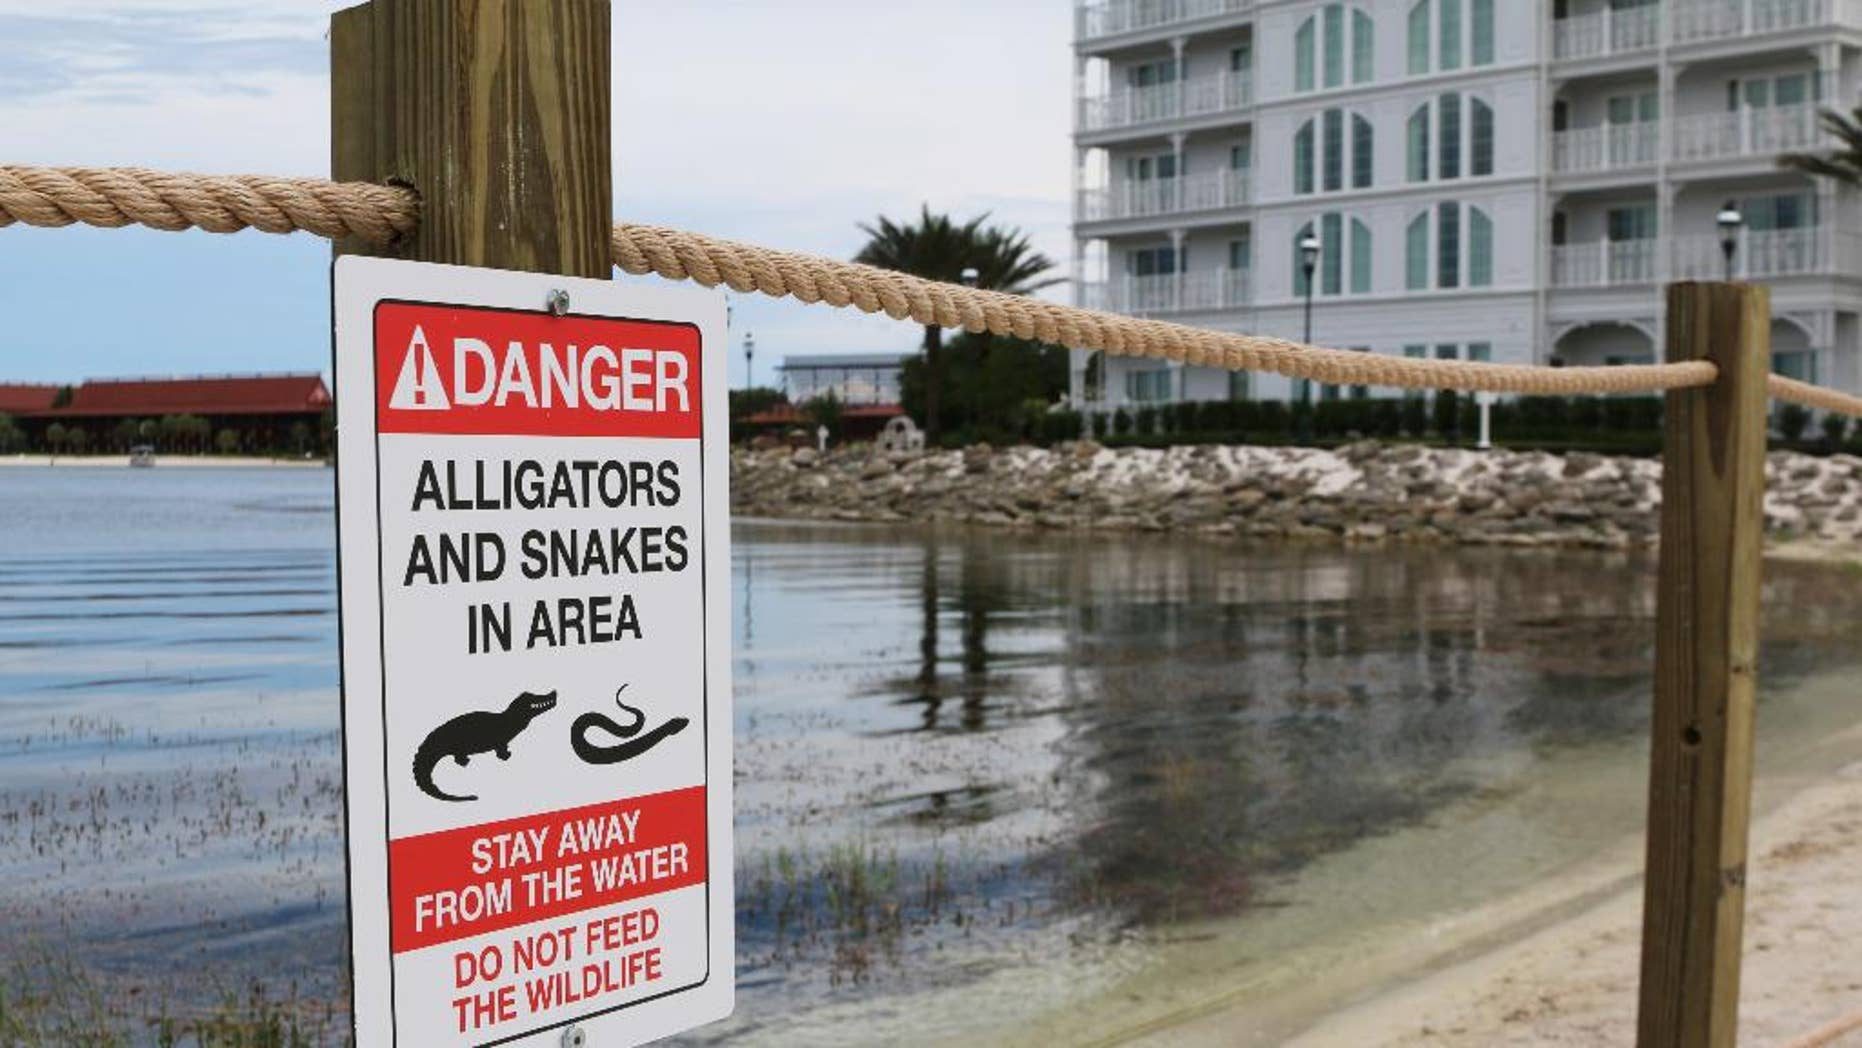 In this Friday, June, 17, 2016 photo released by Walt Disney World Resort, a new sign is seen posted on a beach outside a hotel at a Walt Disney World resort in Lake Buena Vista, Fla. Private family services have been scheduled  for a 2-year-old Nebraska boy killed by an alligator at Disney World. Authorities say an alligator pulled Lane Graves into the water last Tuesday, June 14, 2016, despite the frantic efforts of his father. Lane's body was recovered Wednesday. (Walt Disney World Resort via AP)